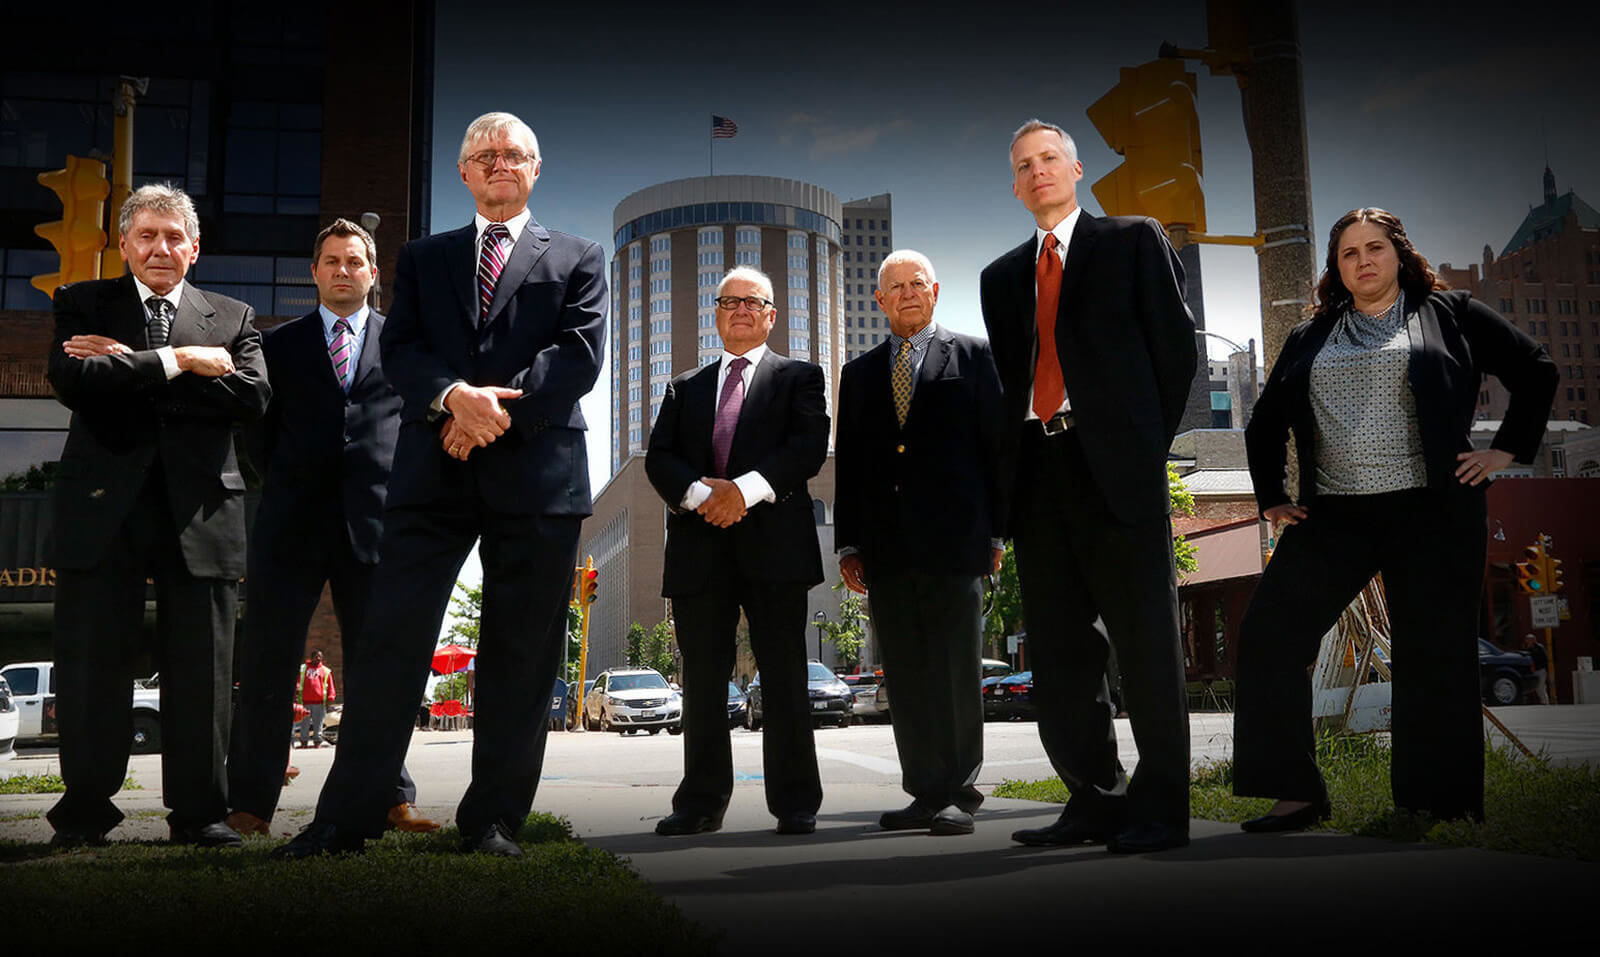 Warshafsky Law uses iNET photography for their Milwaukee law firm